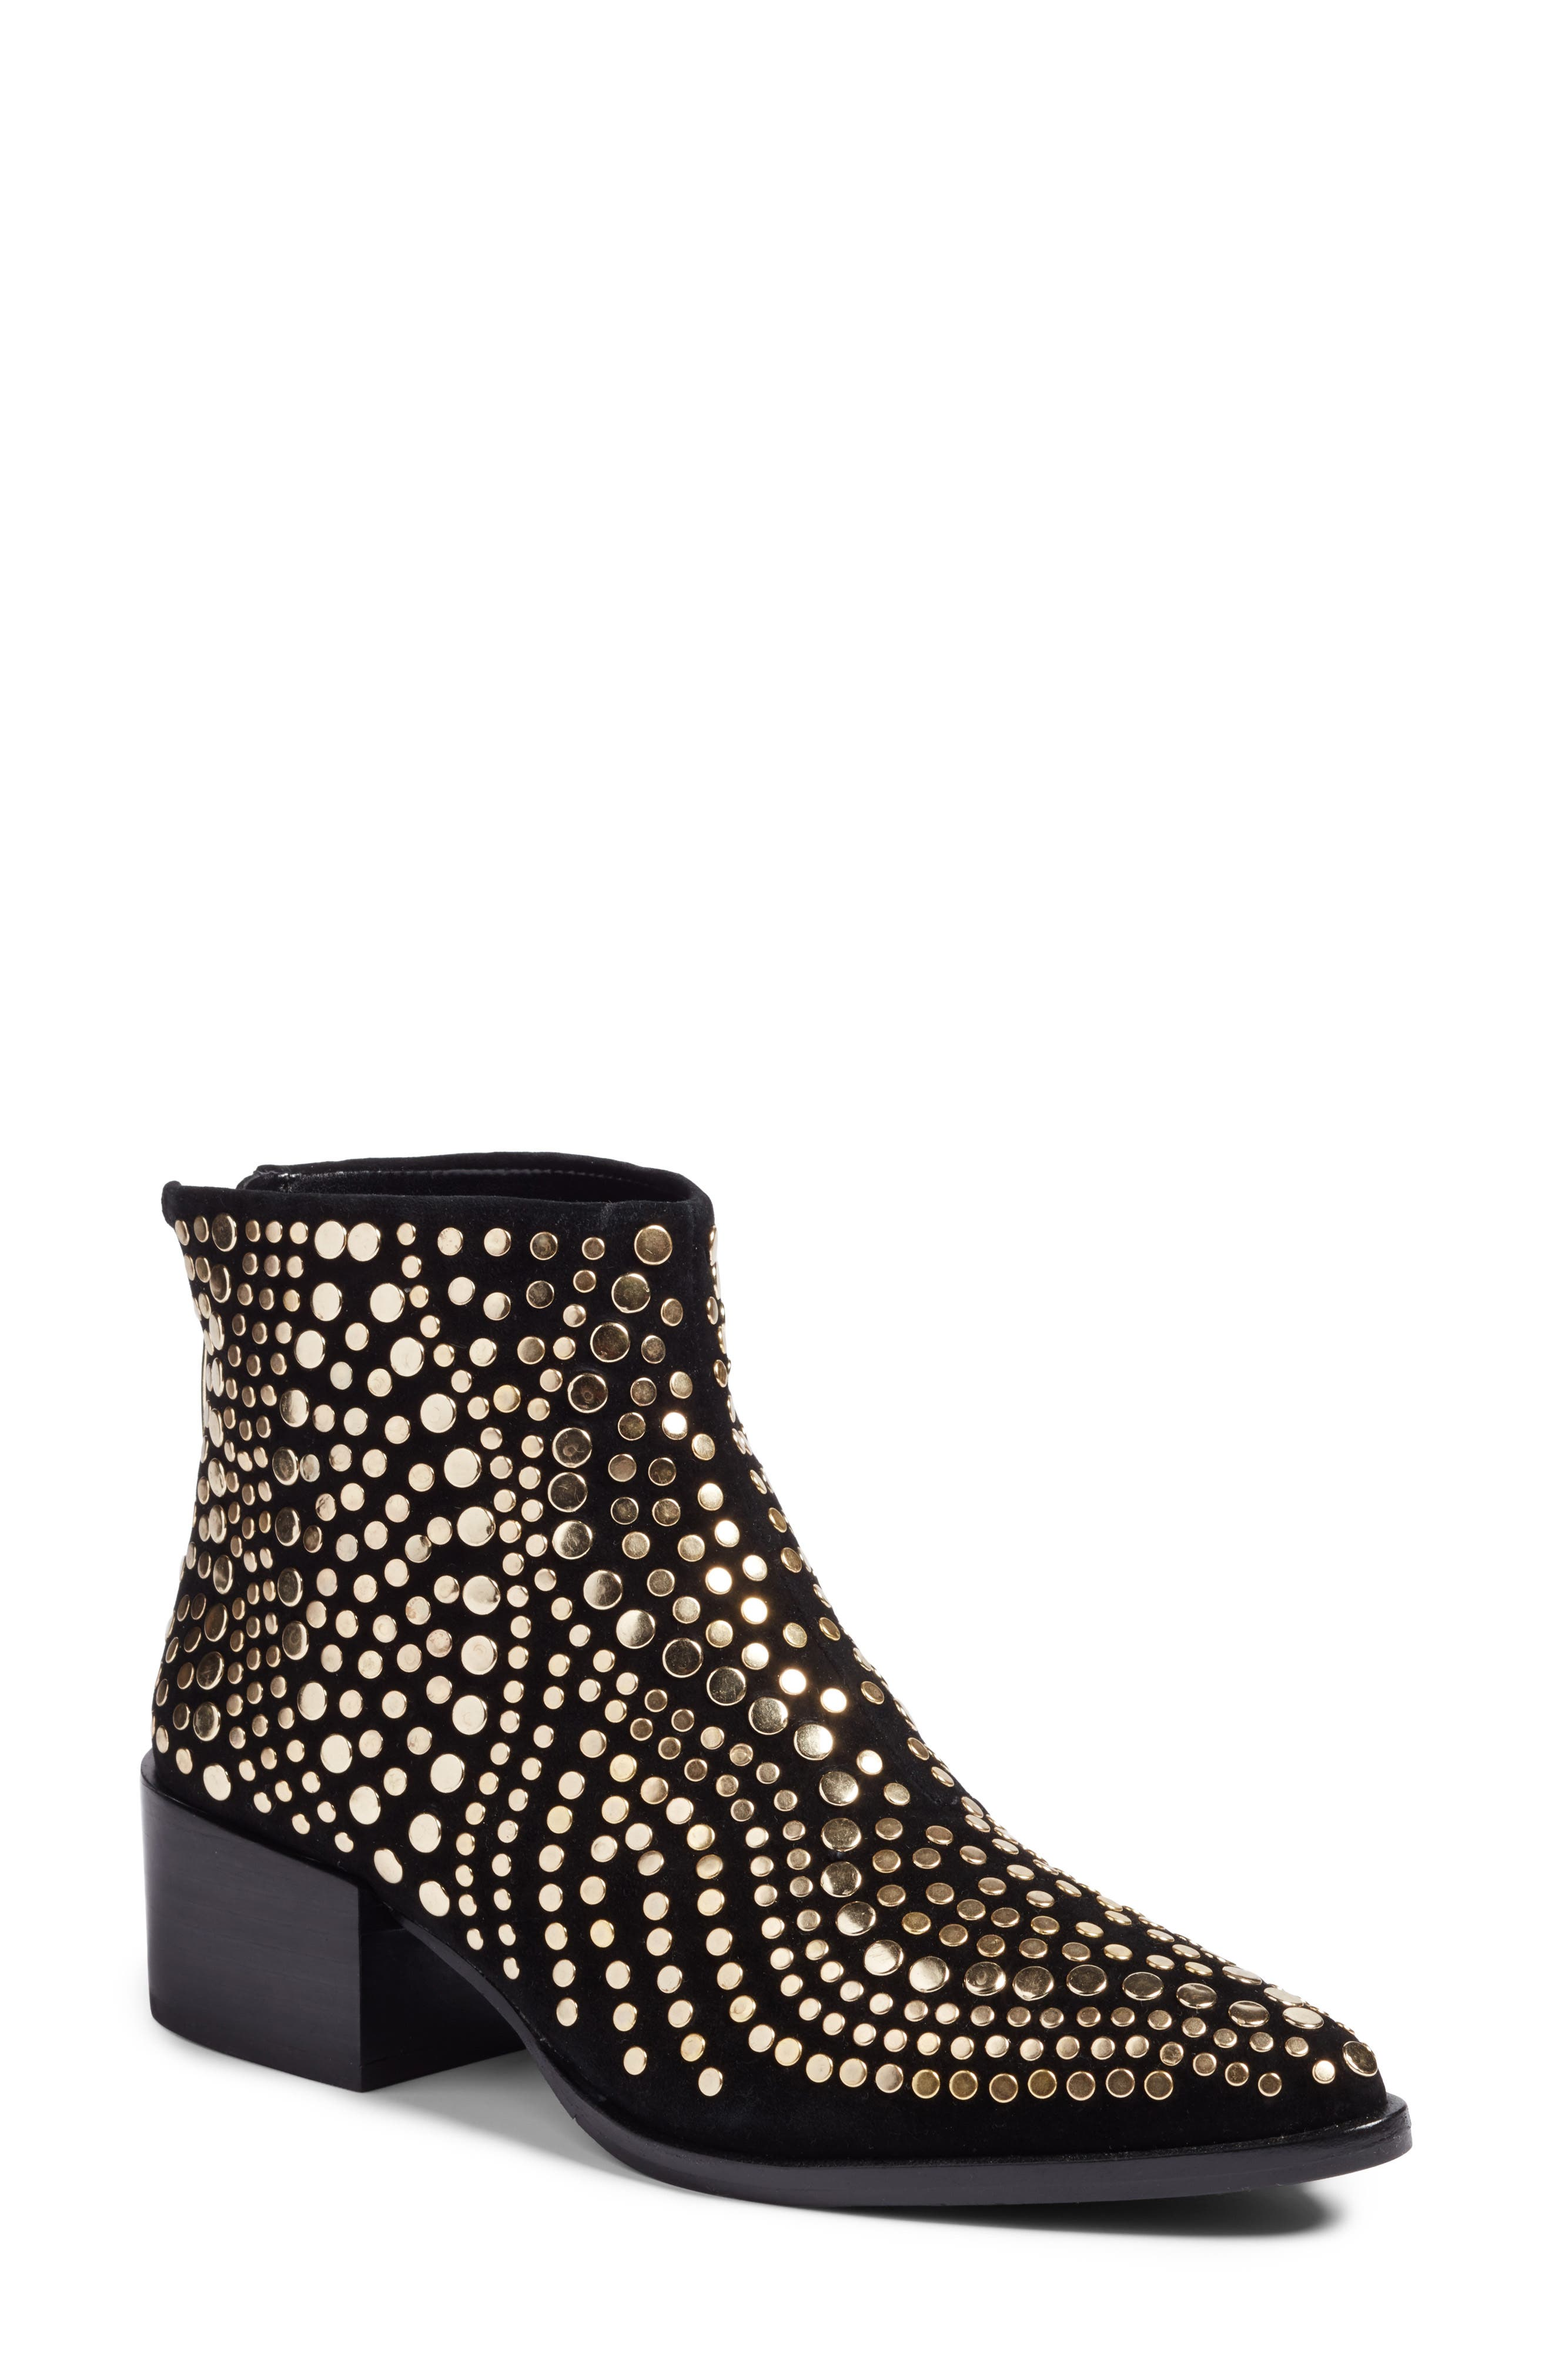 Main Image - Vince Camuto Edenny Studded Pointy Toe Bootie (Women)